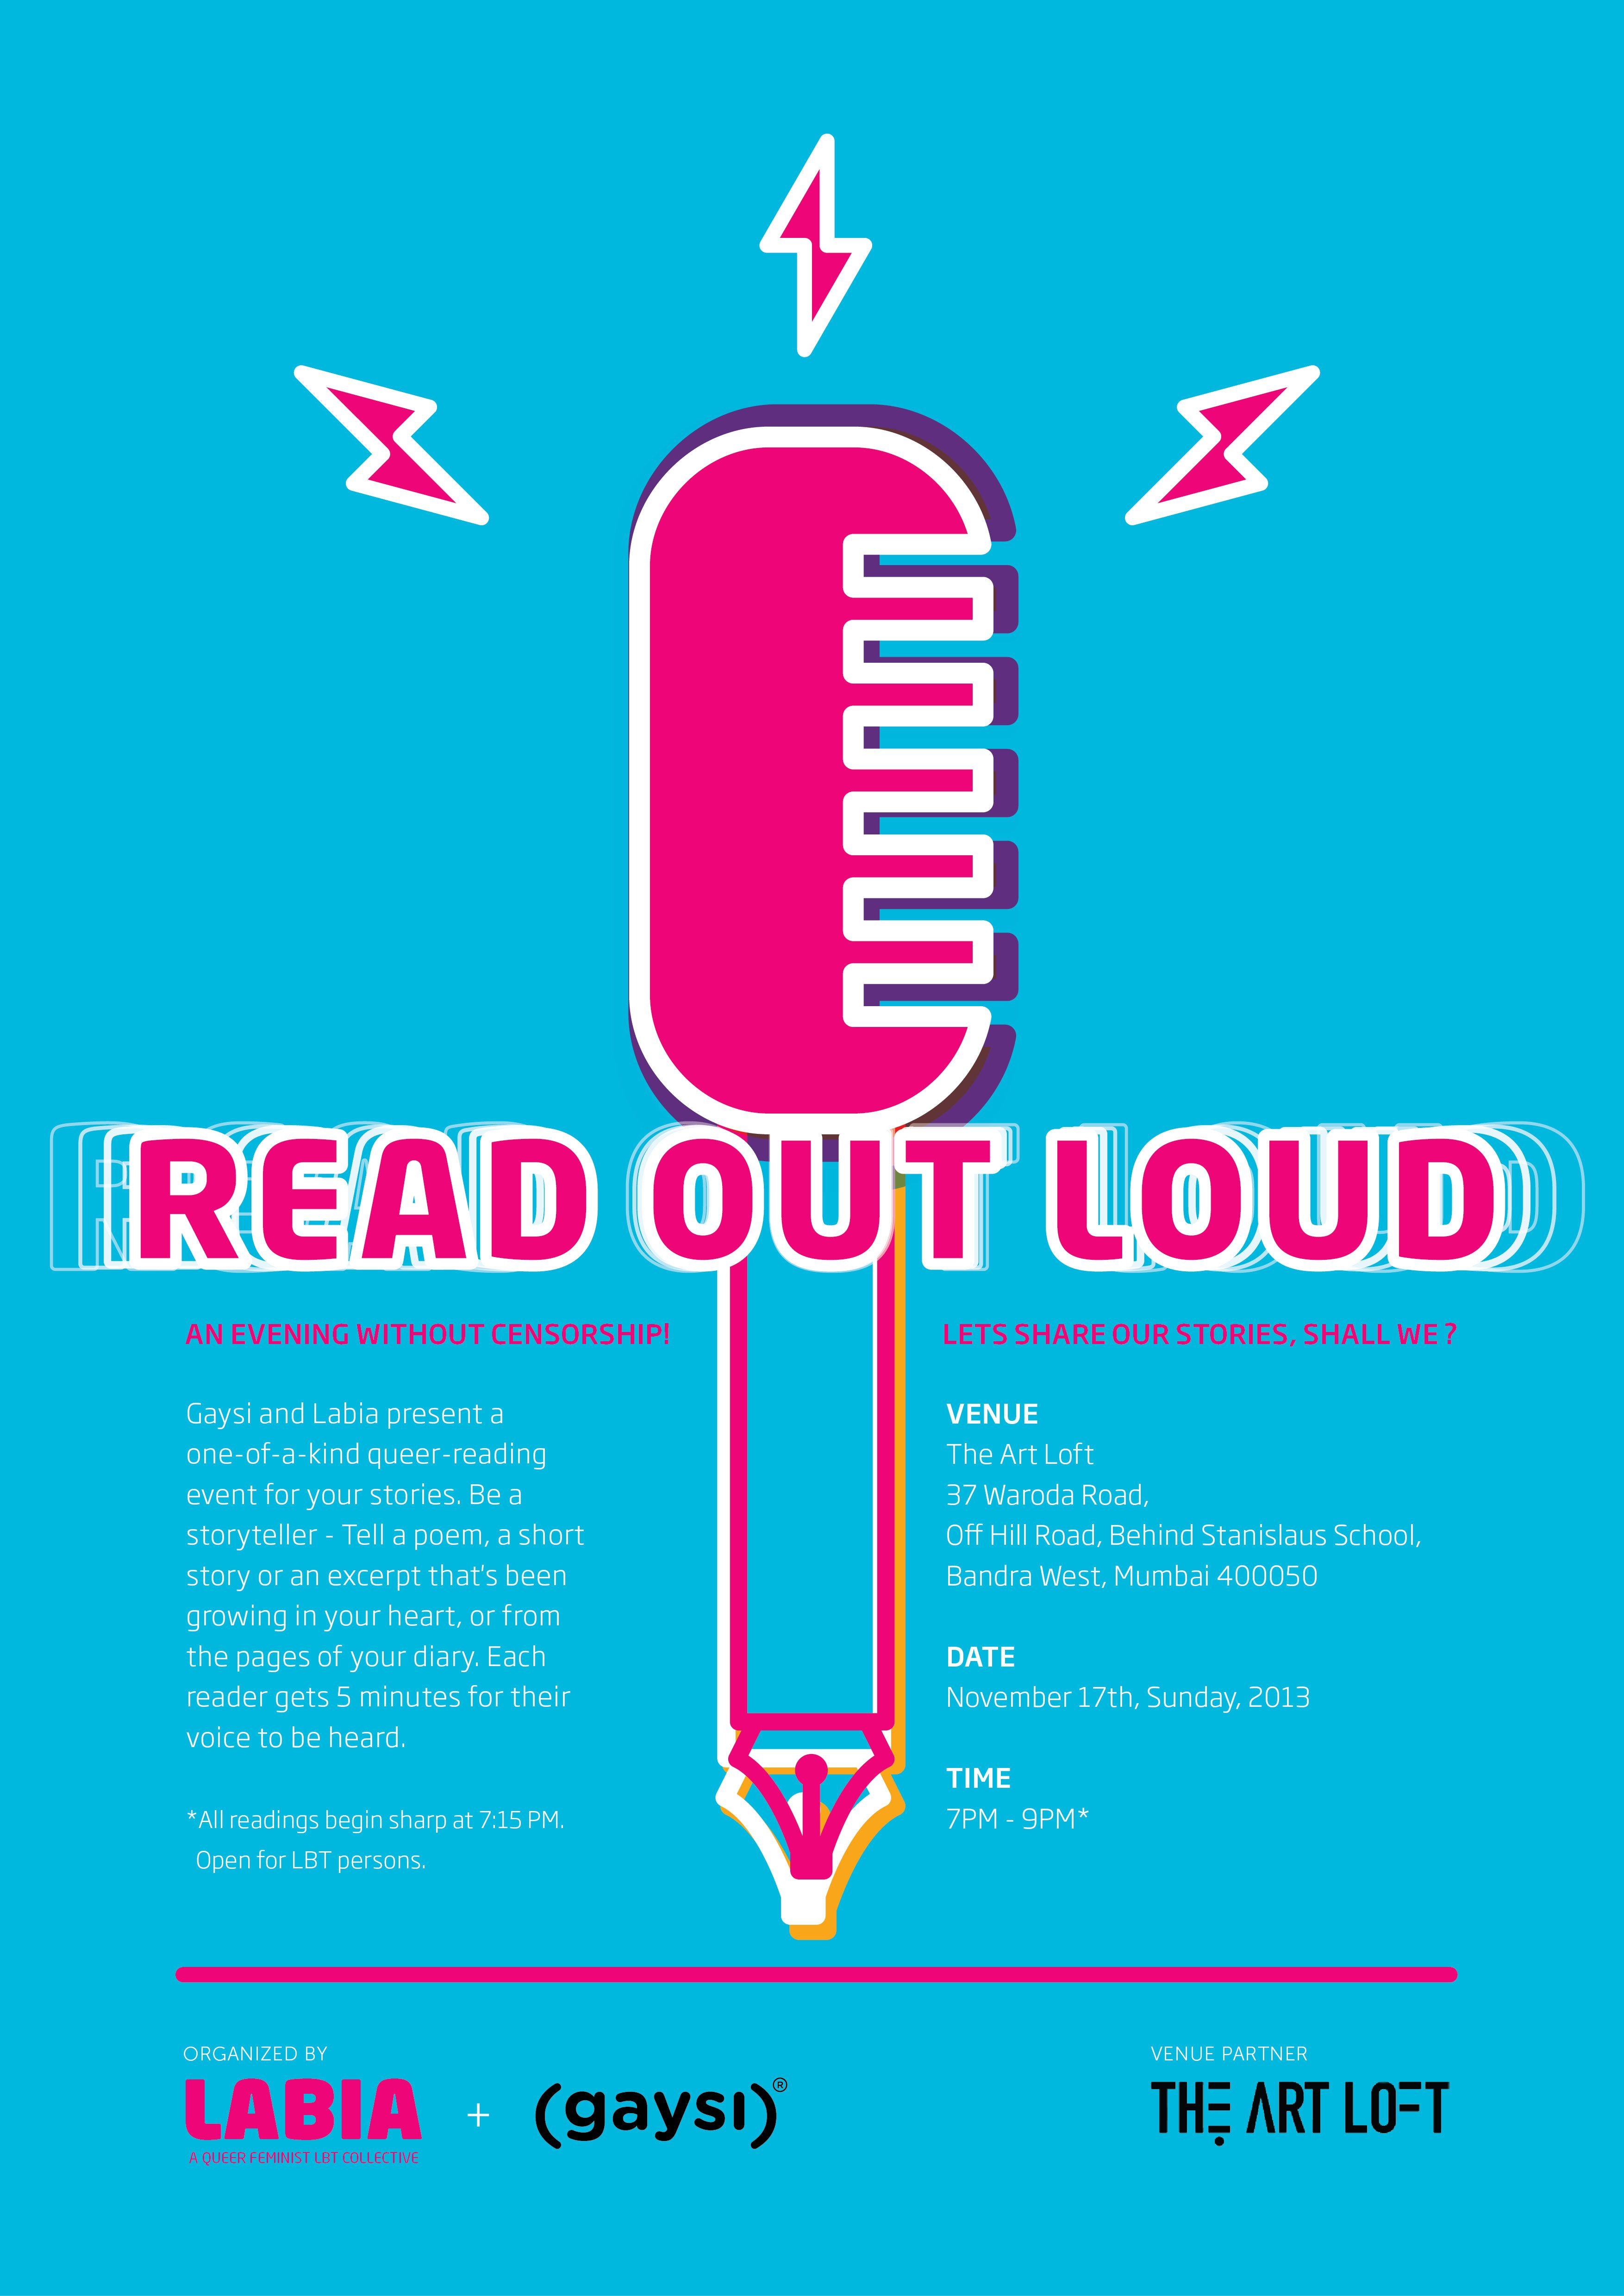 Read Out Loud Queer Book Reading Session in Mumbai on 17th